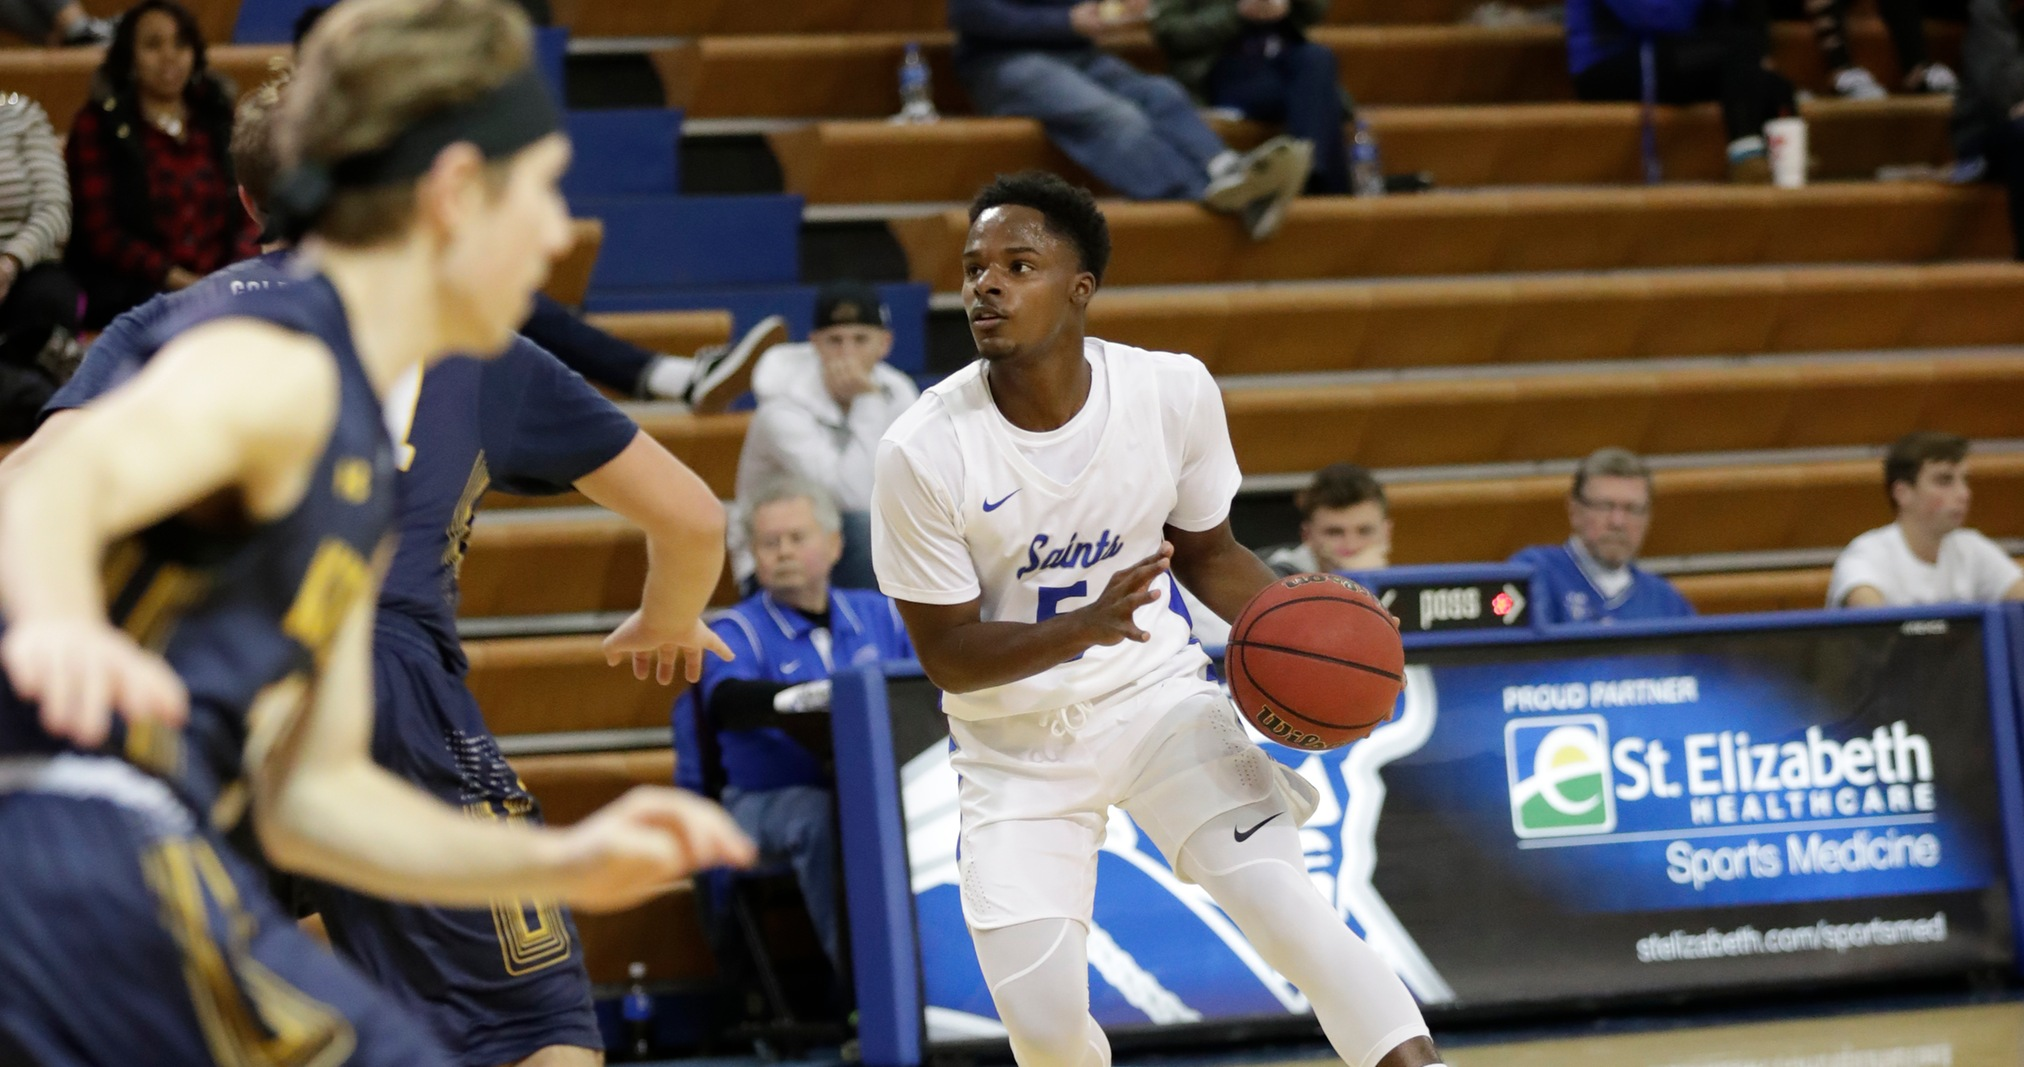 Men's Basketball Notches First Win of the Season, 91-42